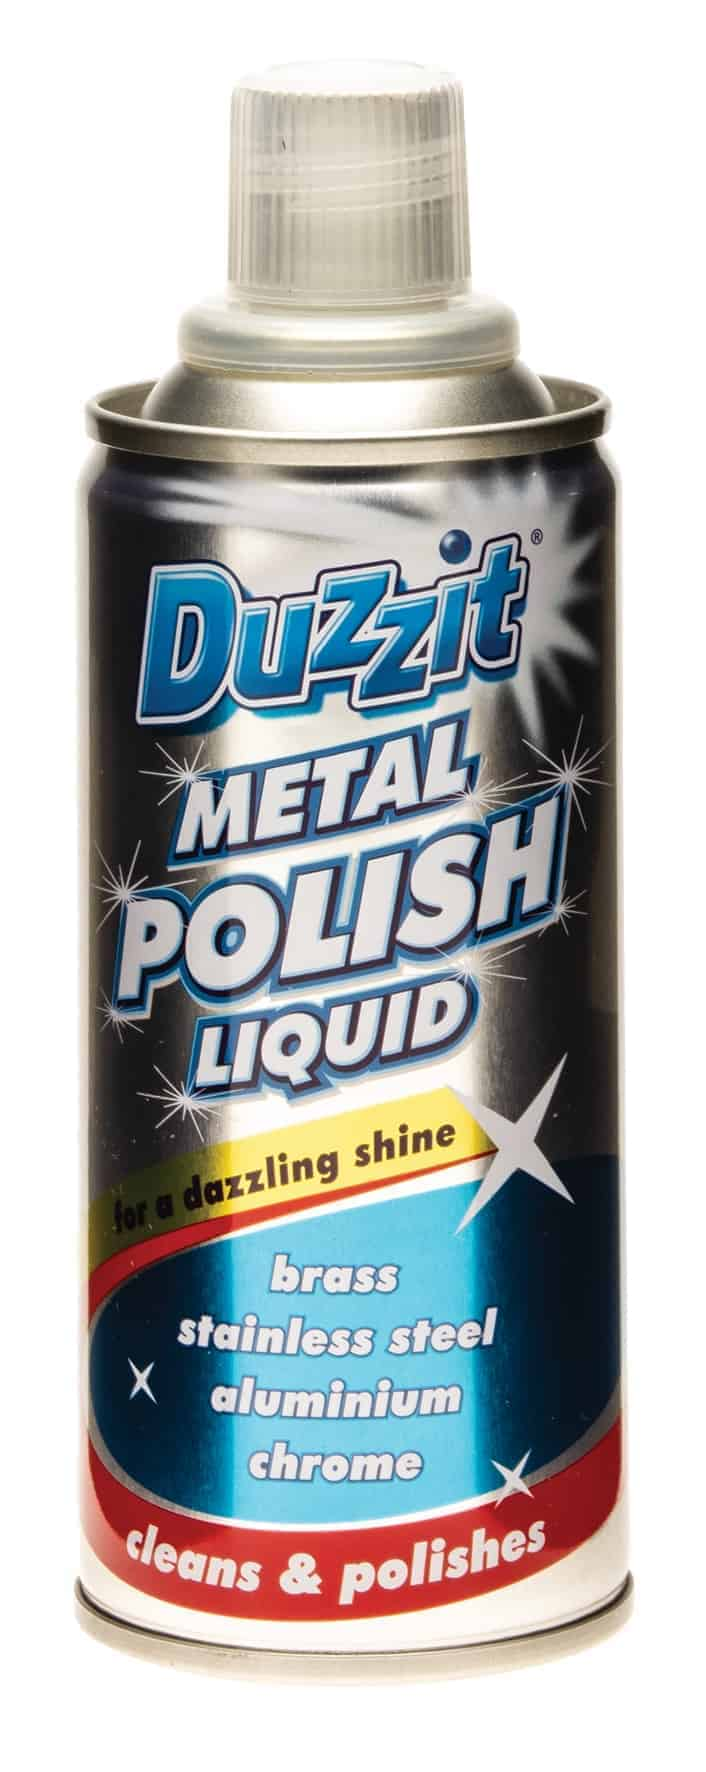 Duzzit Metal Polish